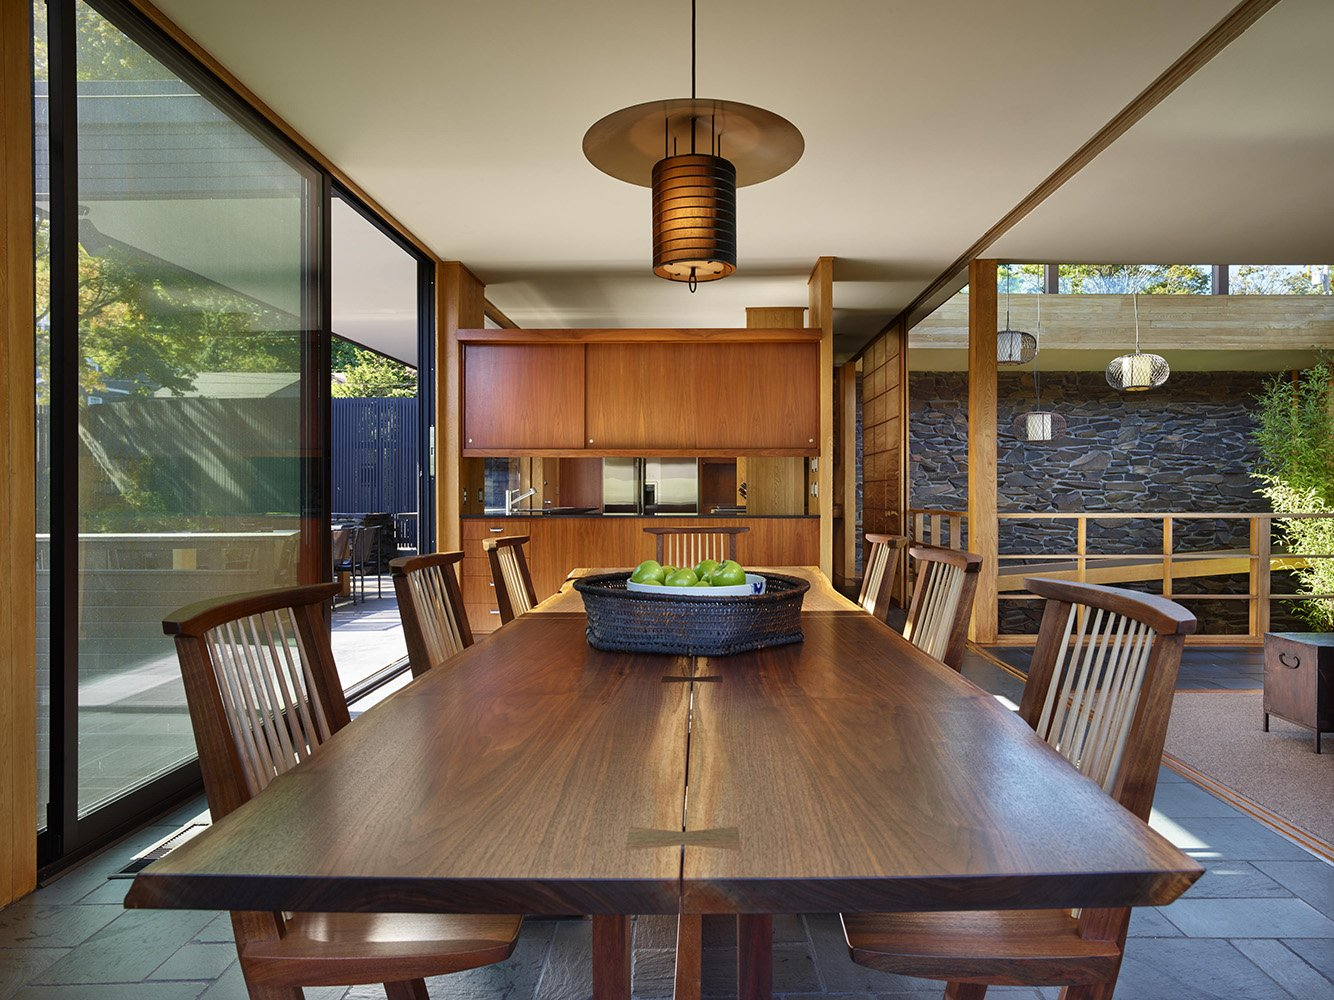 A custom-sized table and chair set graces the dining room designed by Northwest woodworker George Nakashima